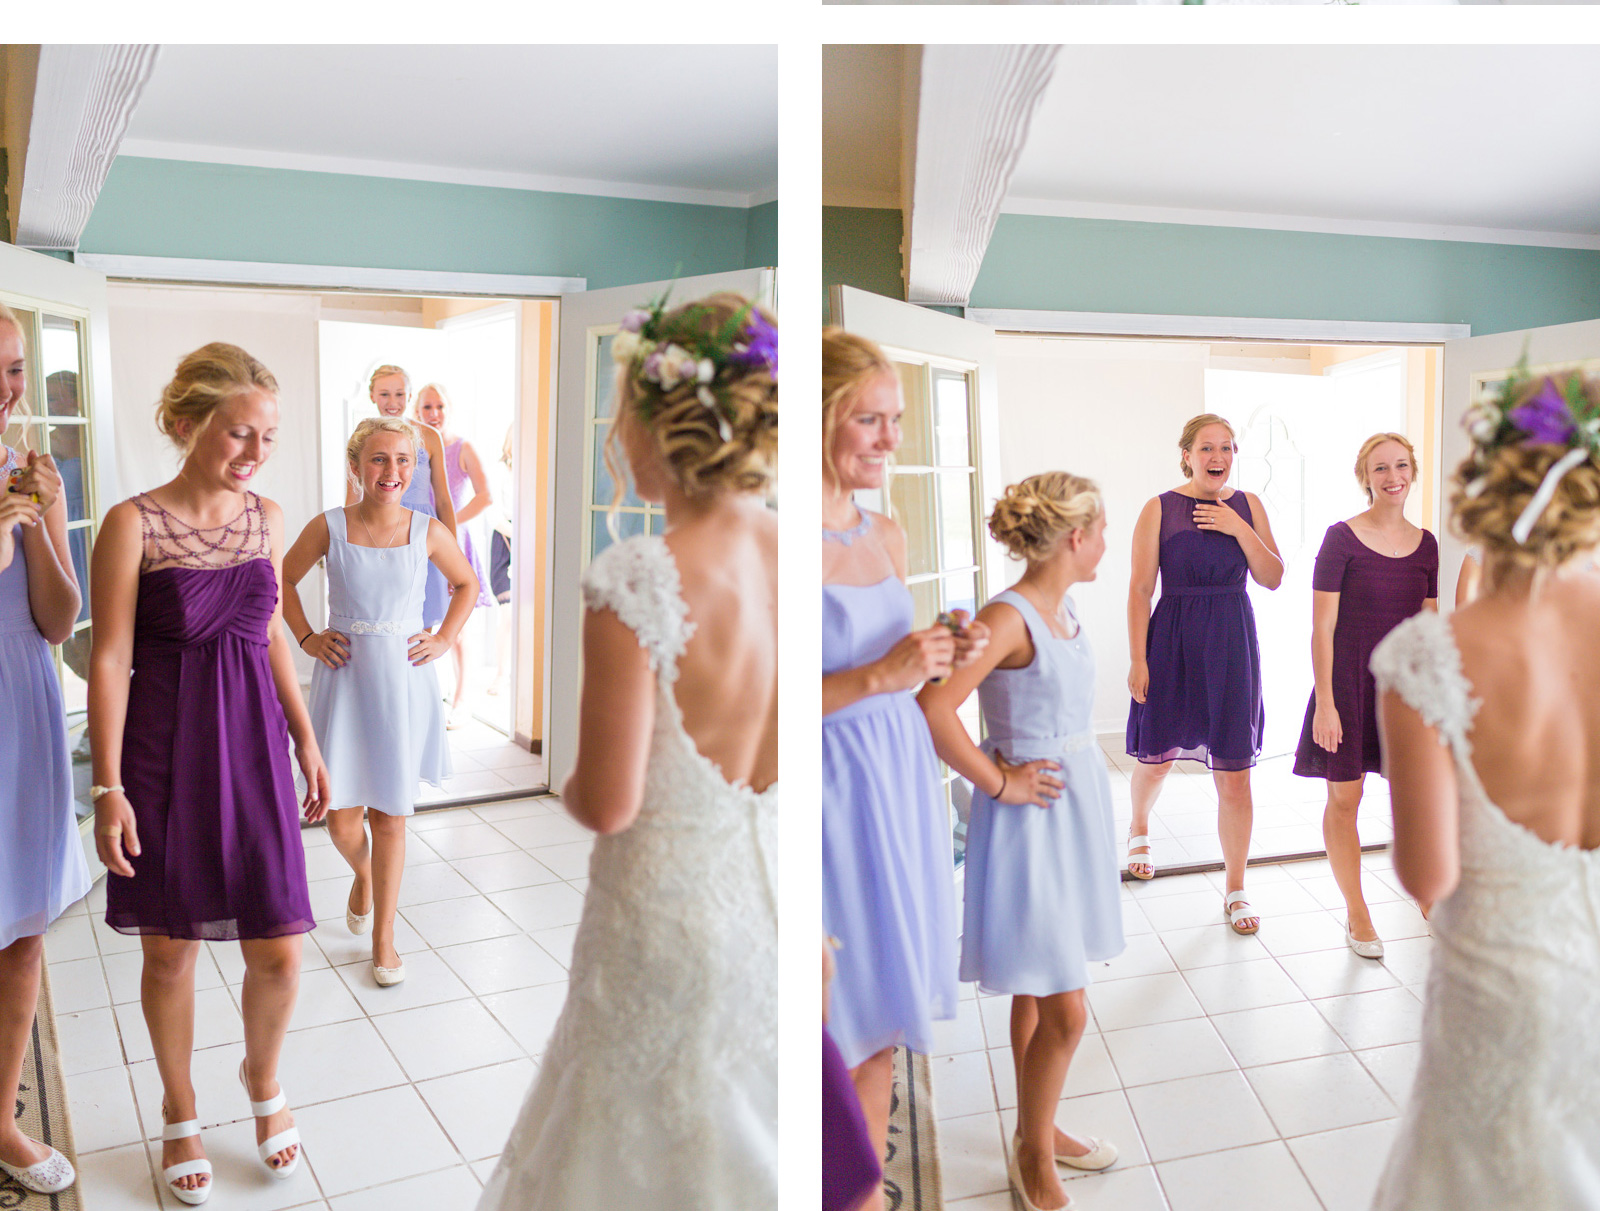 Jessica-Salzman's-Wedding-Natalie-Schutt-Photography_08.jpg